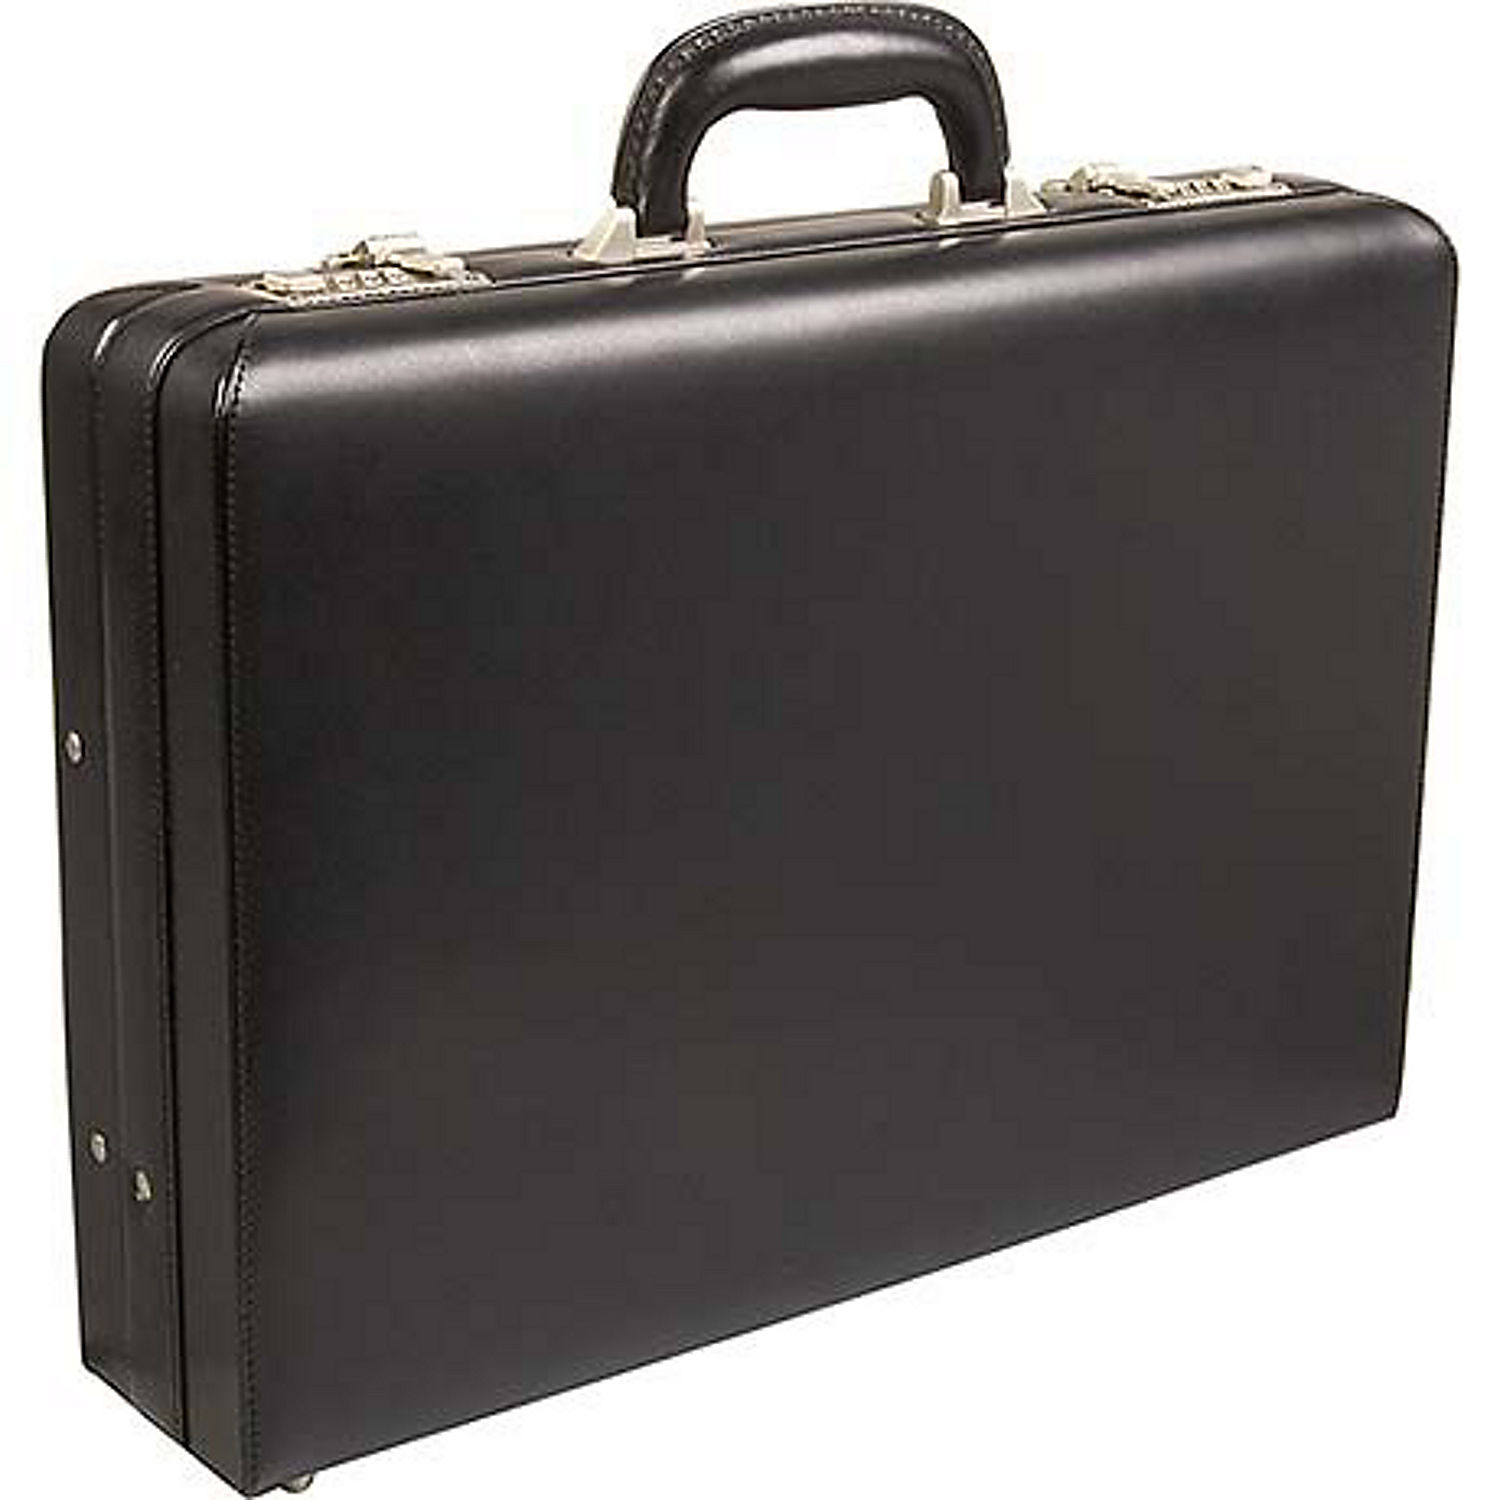 Kenneth Cole Reaction Lock And Roll Leather Attache